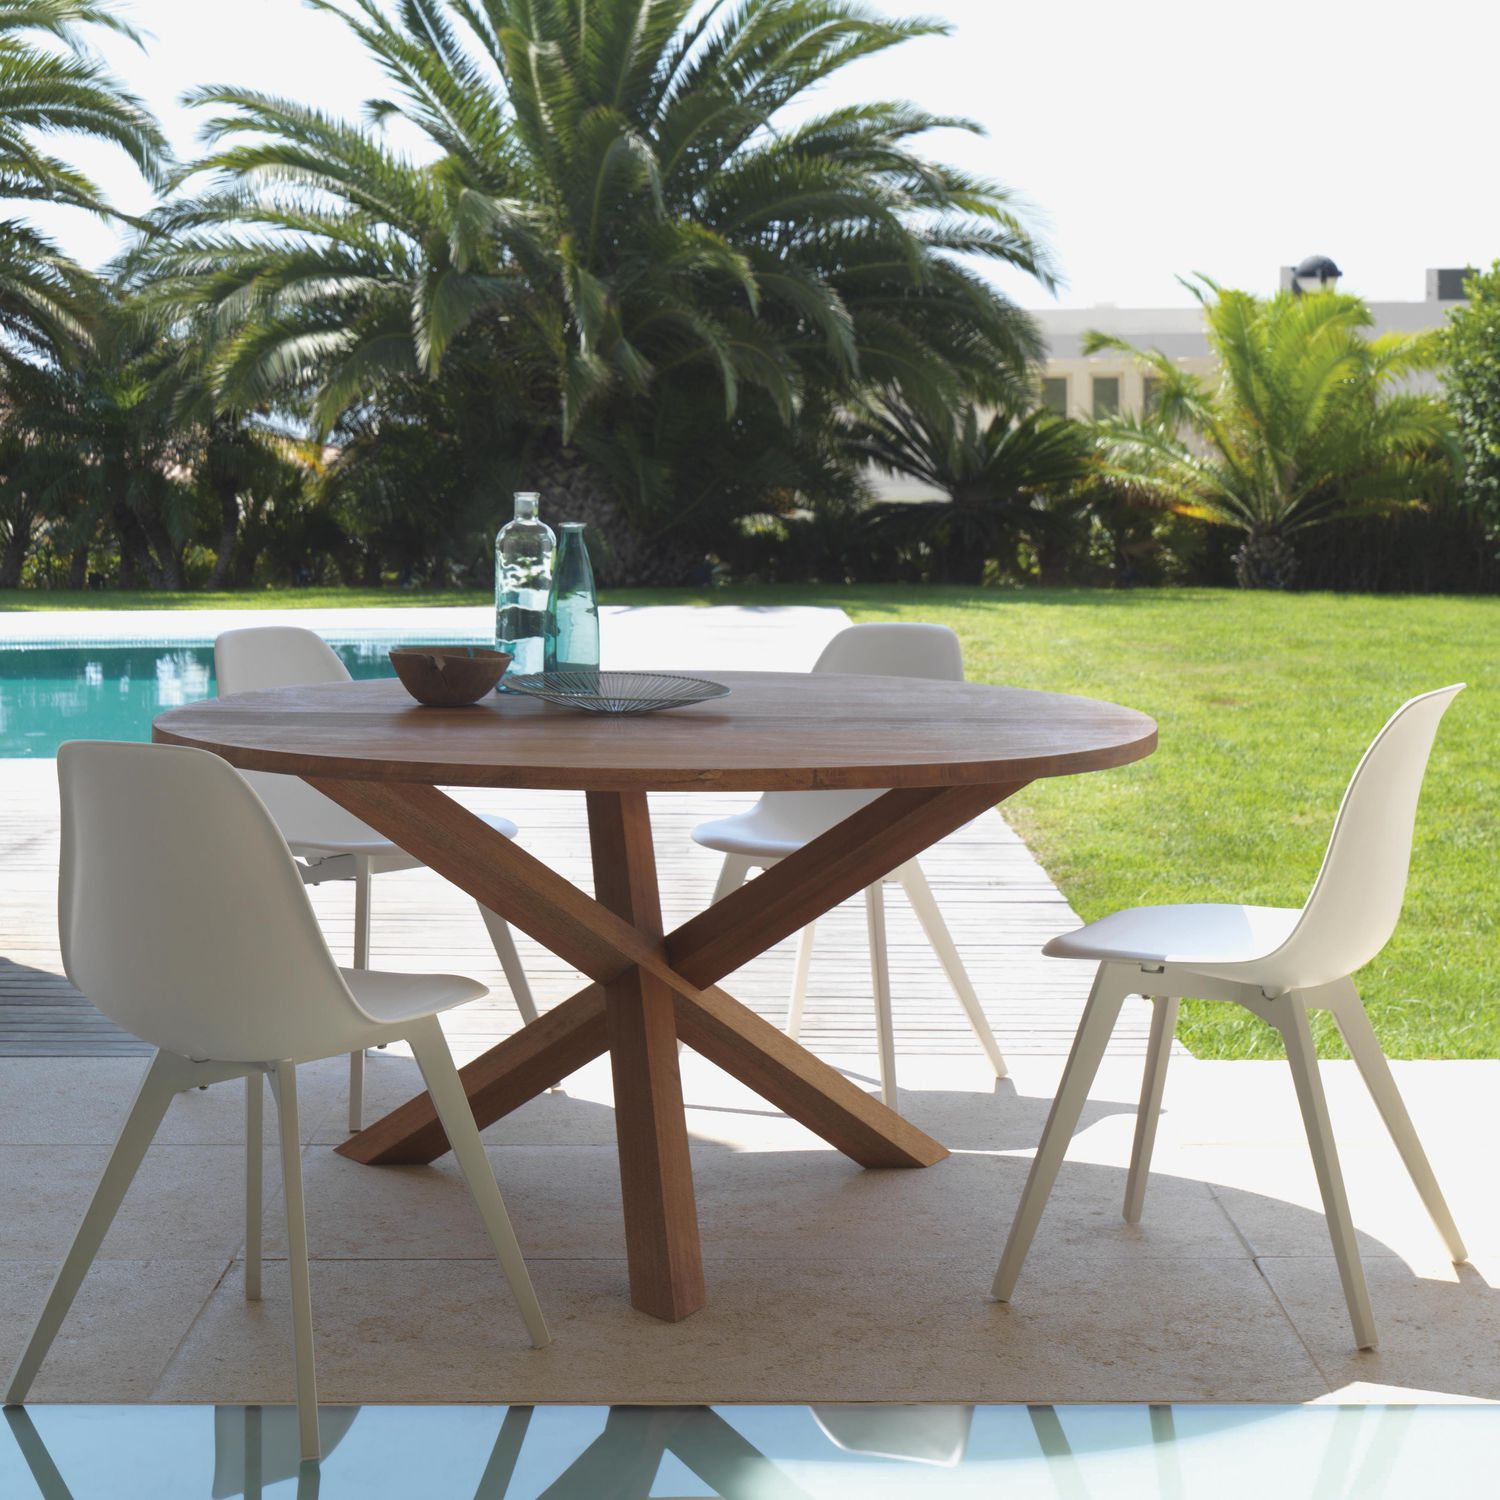 Bali Round Teak Dining Table Couture Outdoor